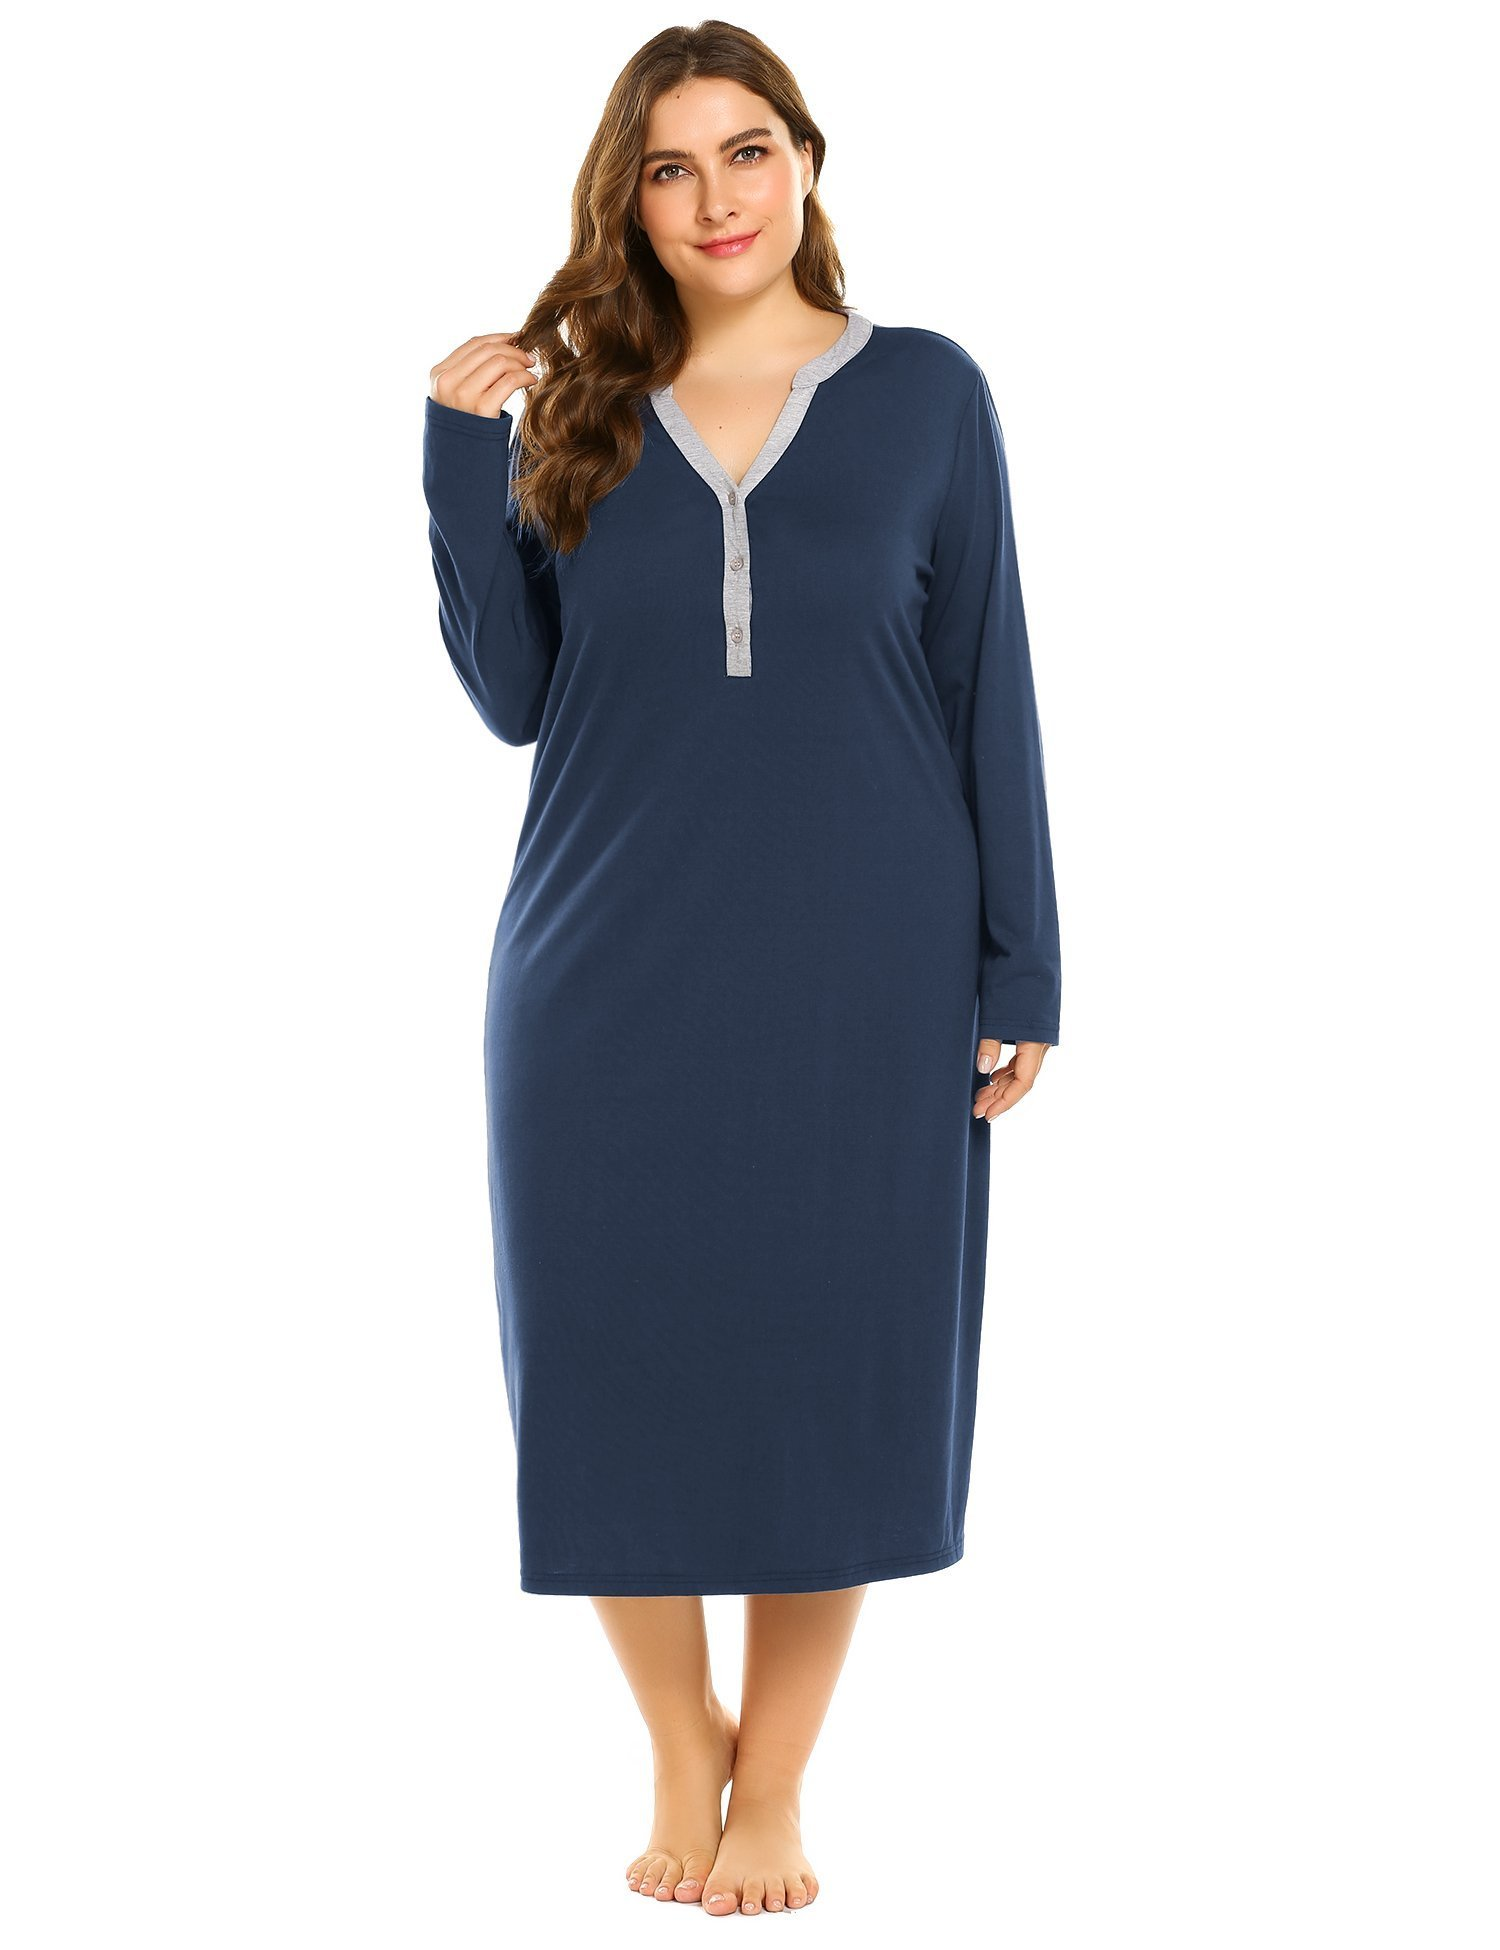 IN'VOLAND Sleepwear Women's Plus Size Cotton Knit Long Sleeve Nightgown Full Length Sleep Dress(16W~24W) by IN'VOLAND